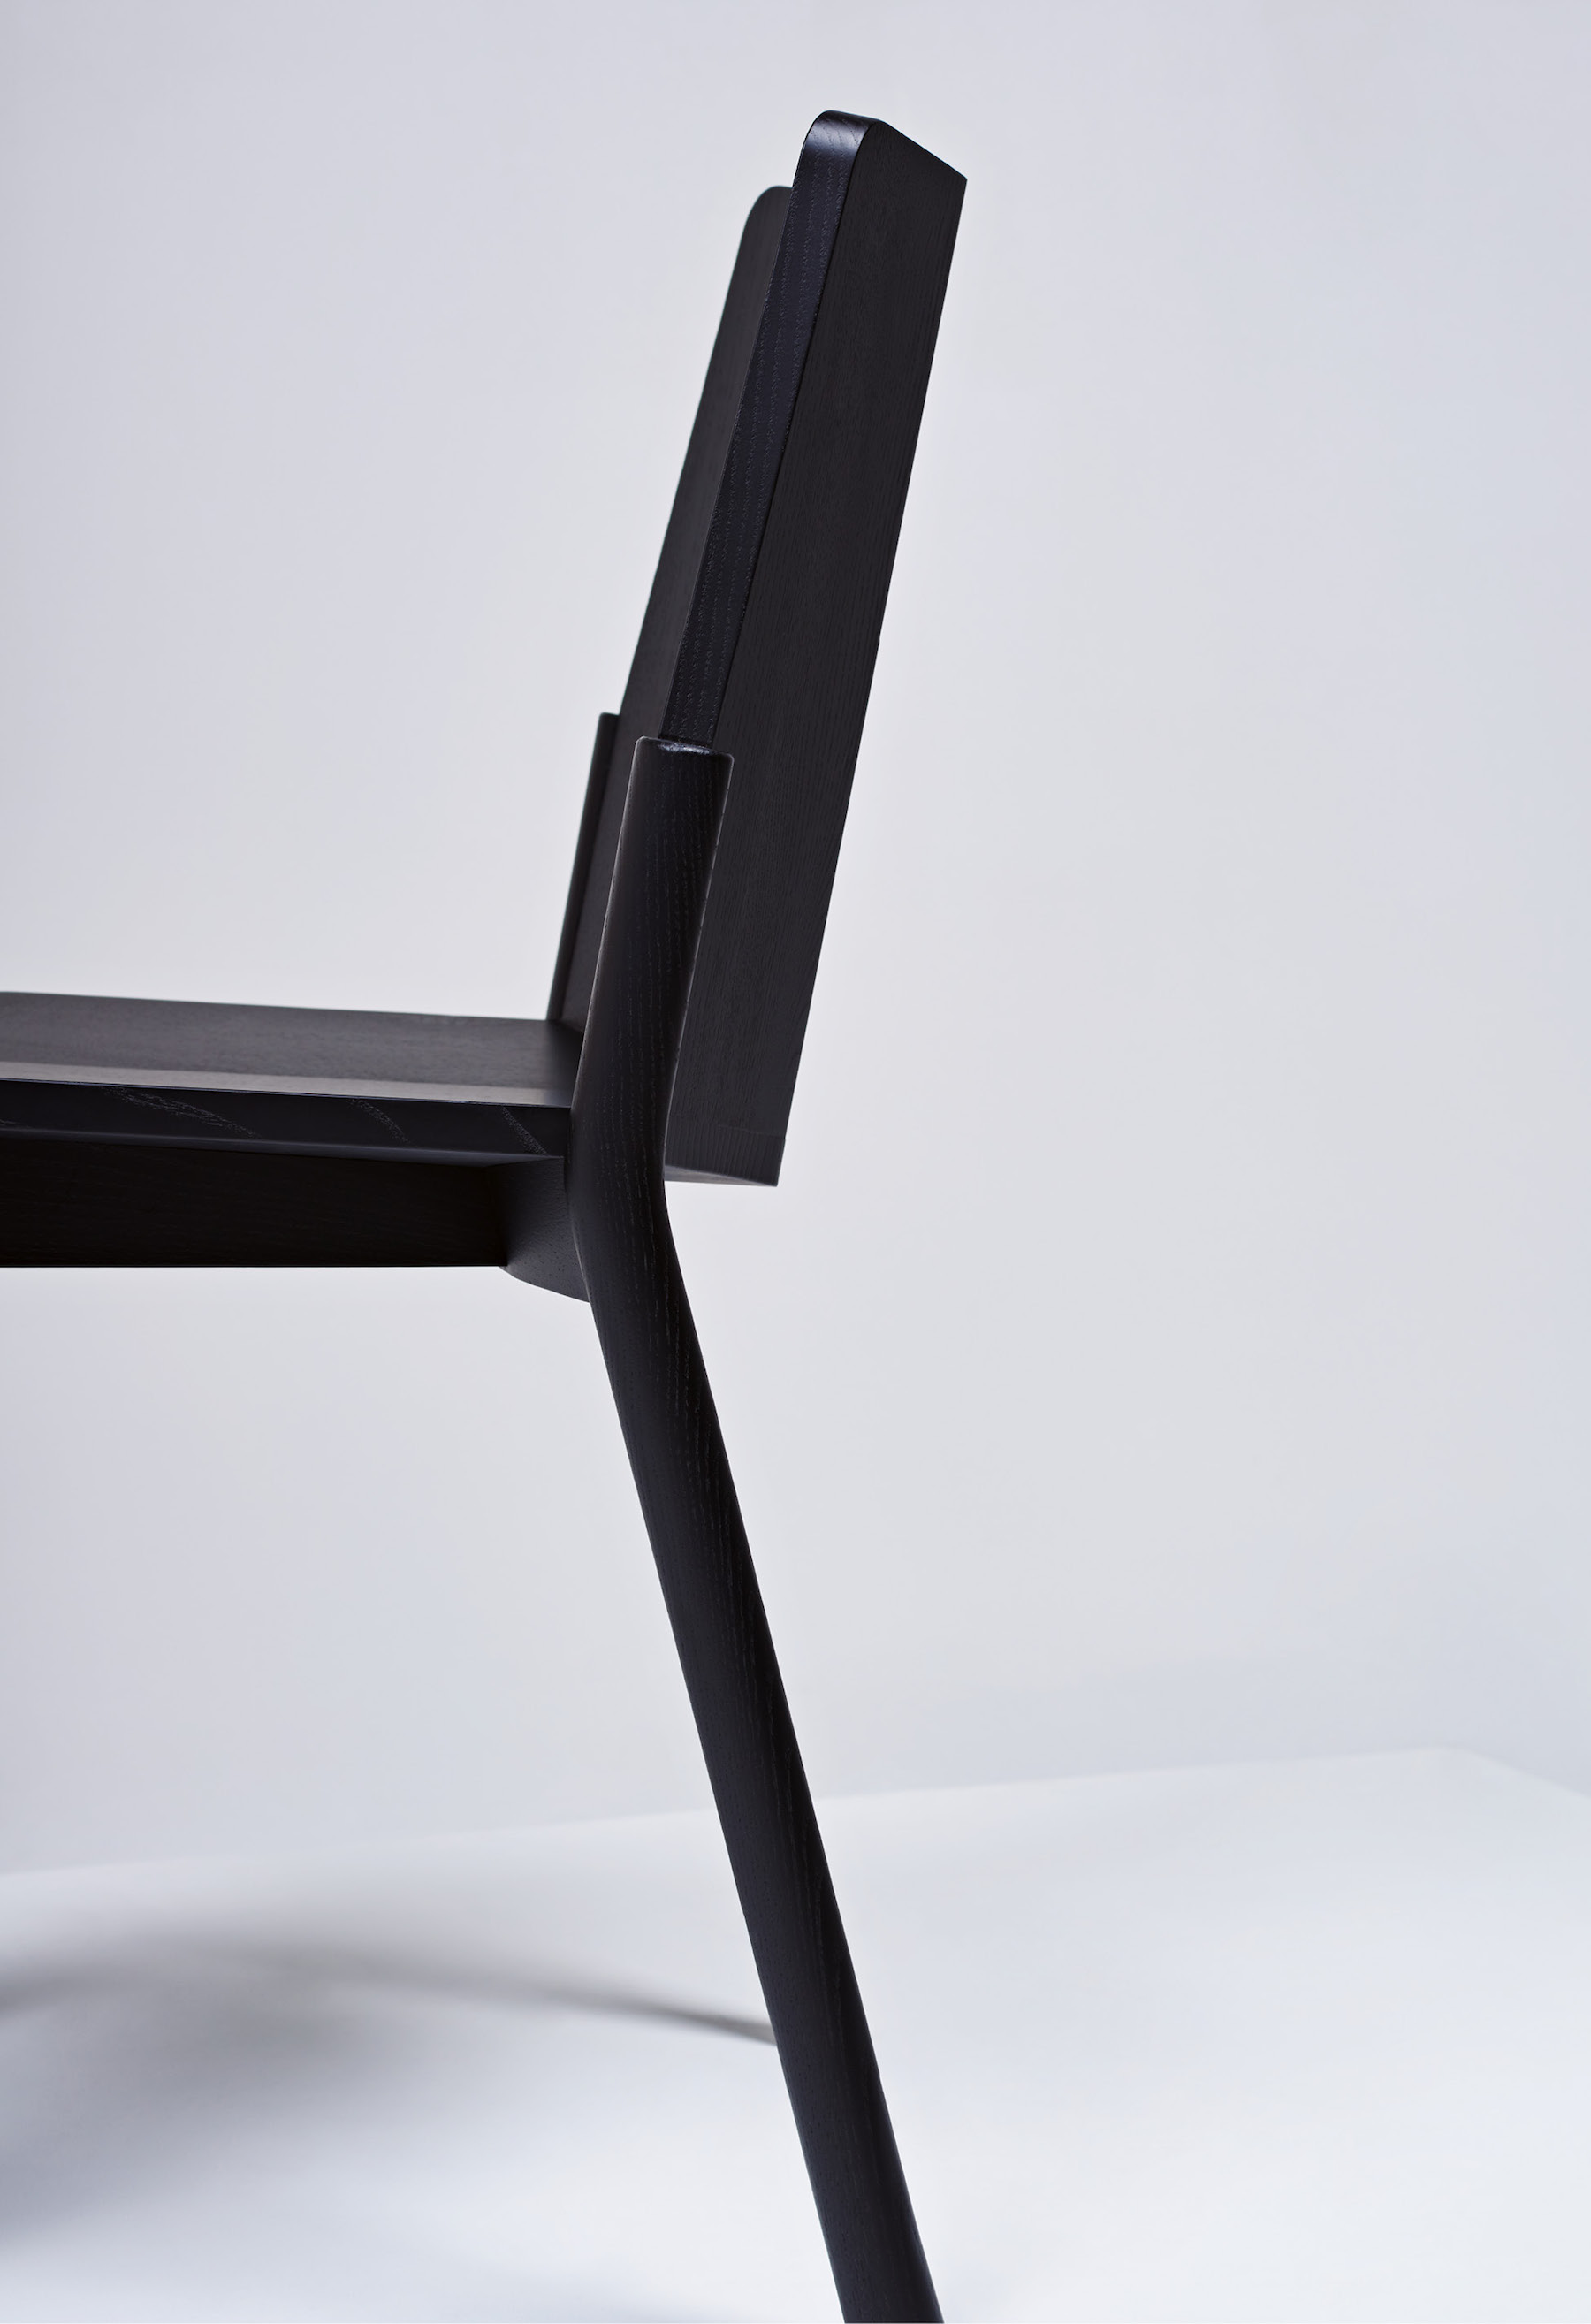 Tronco Chairs by Industrial Facility for Matiazzi